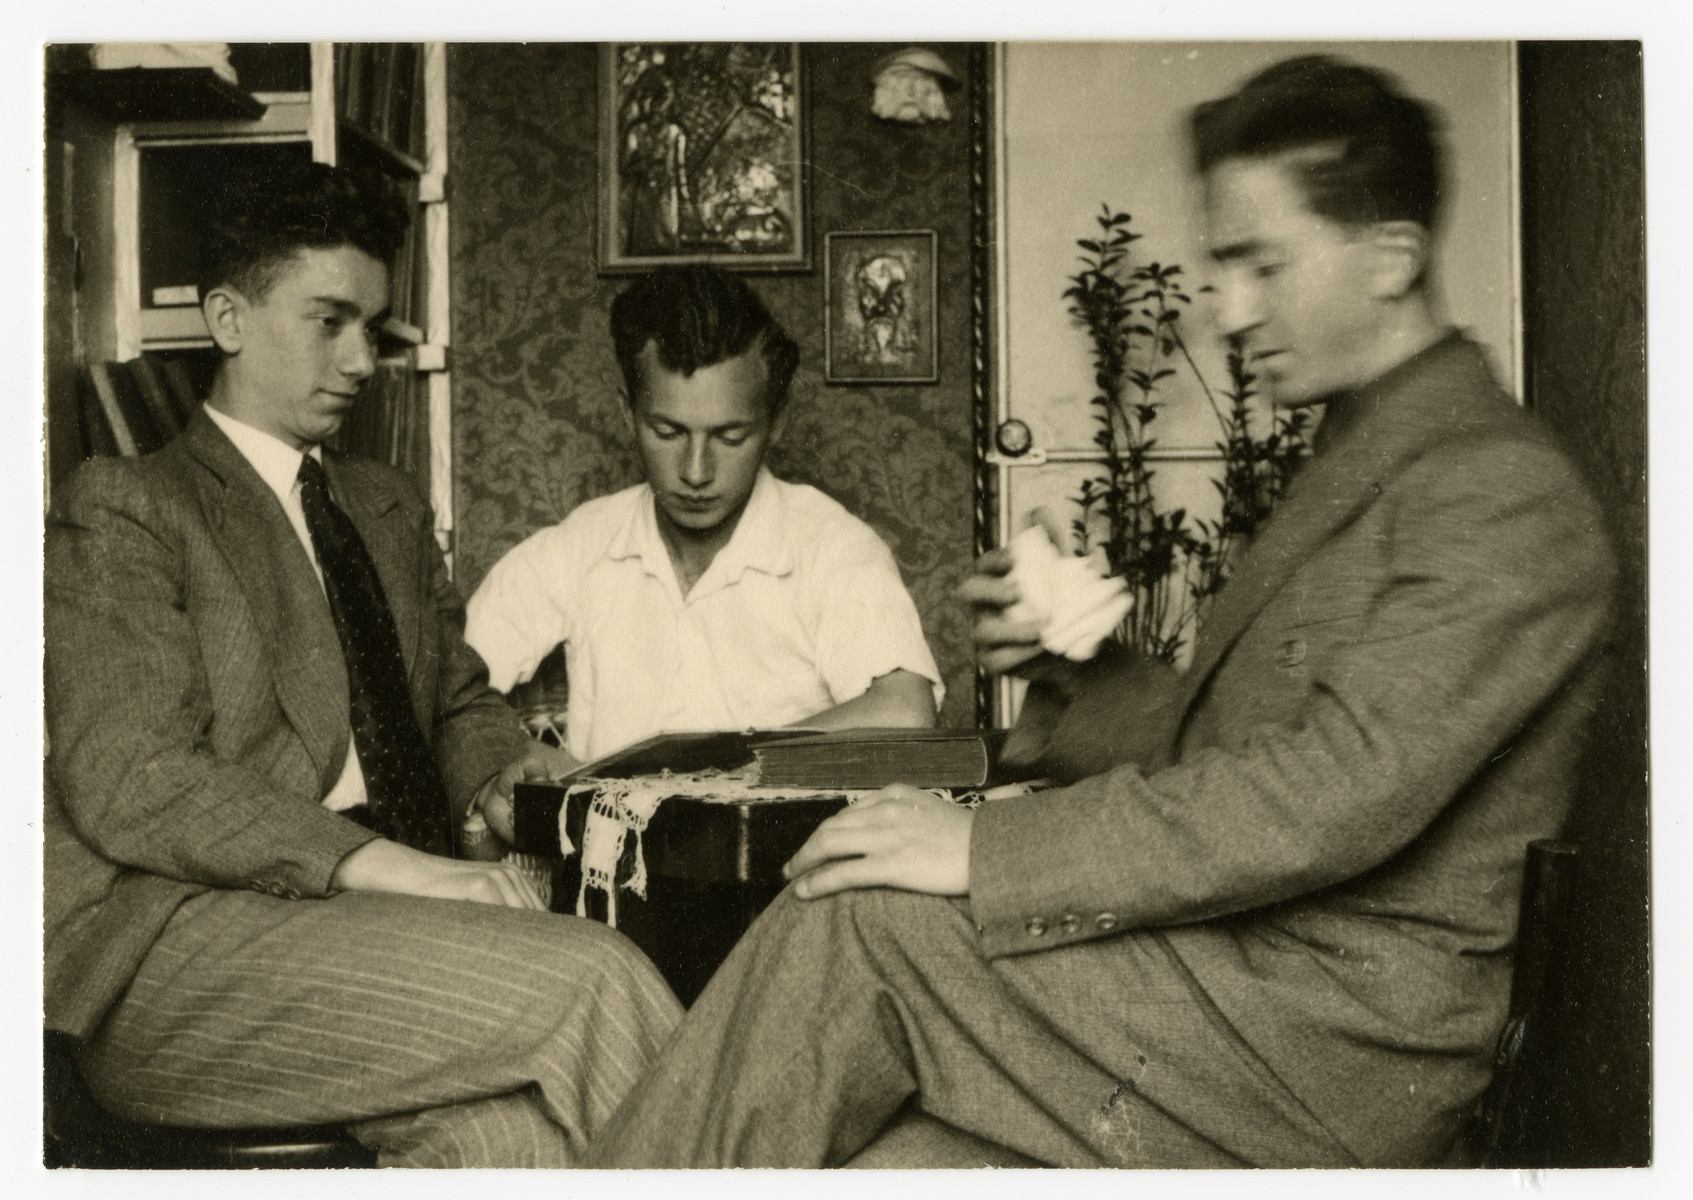 Mendel Grosman (right) sits in a parlor with two friends.